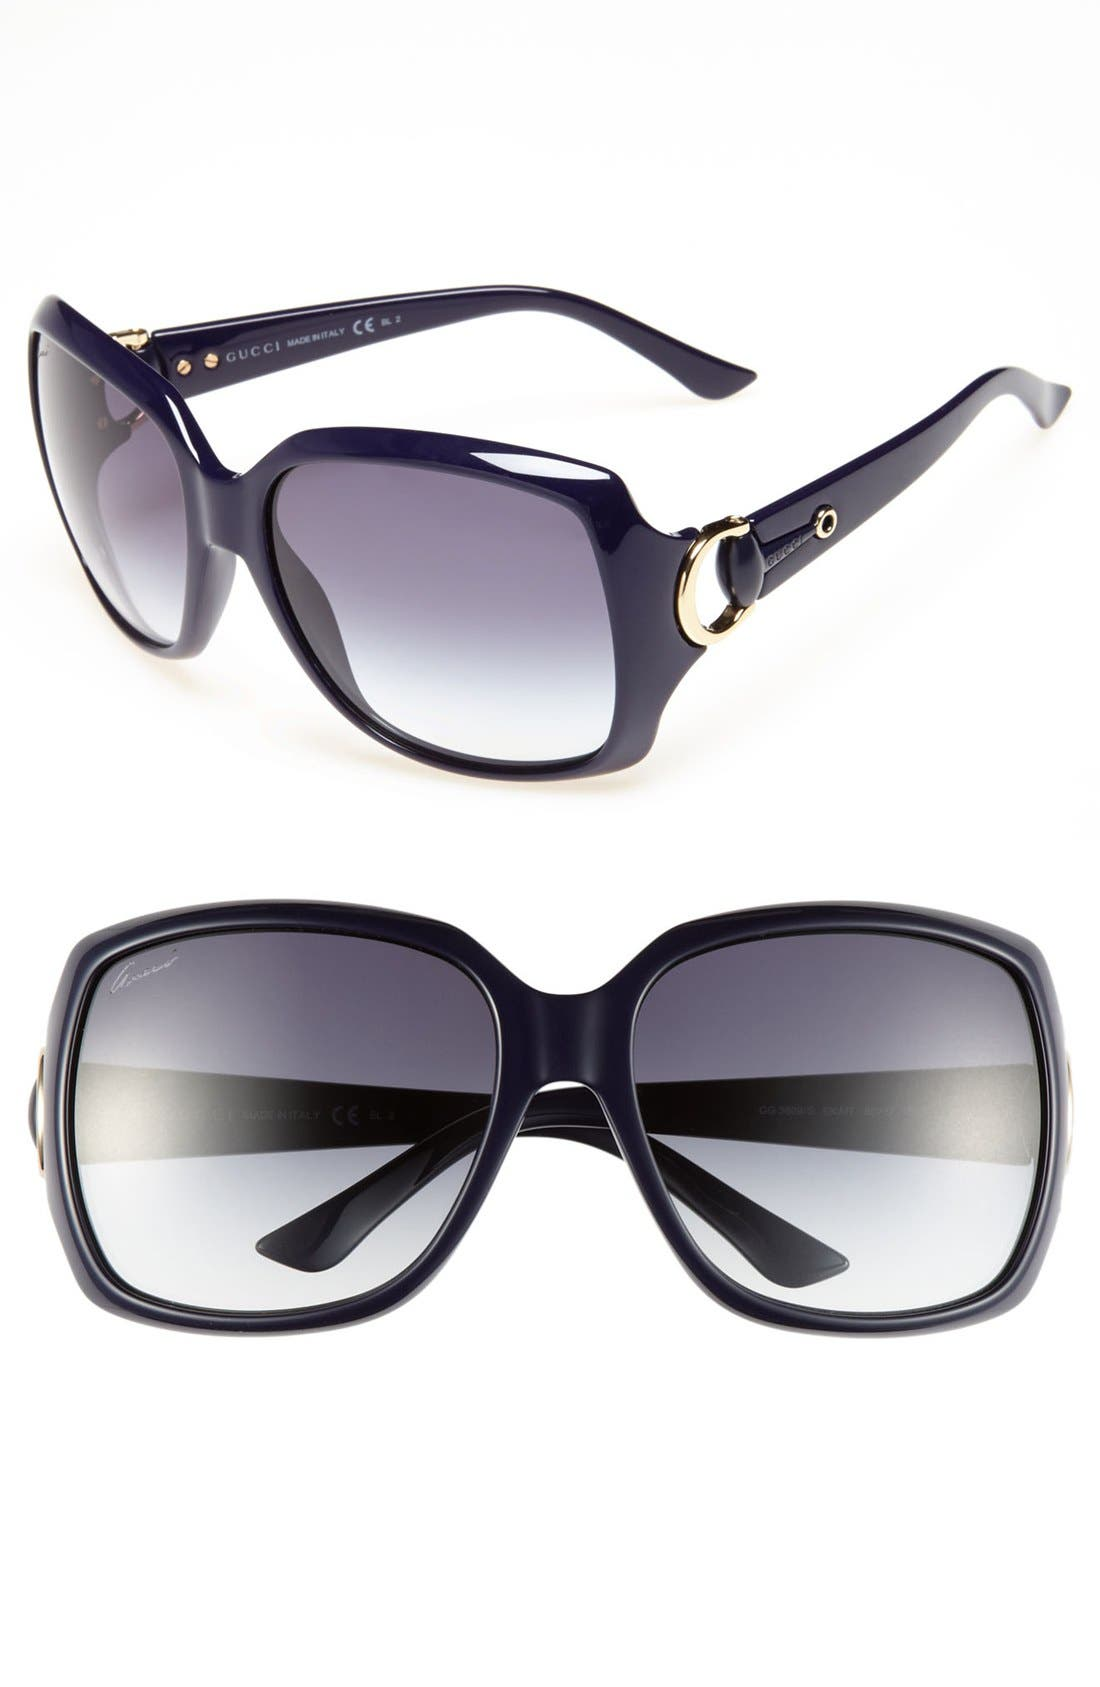 Alternate Image 1 Selected - Gucci 60mm Sunglasses